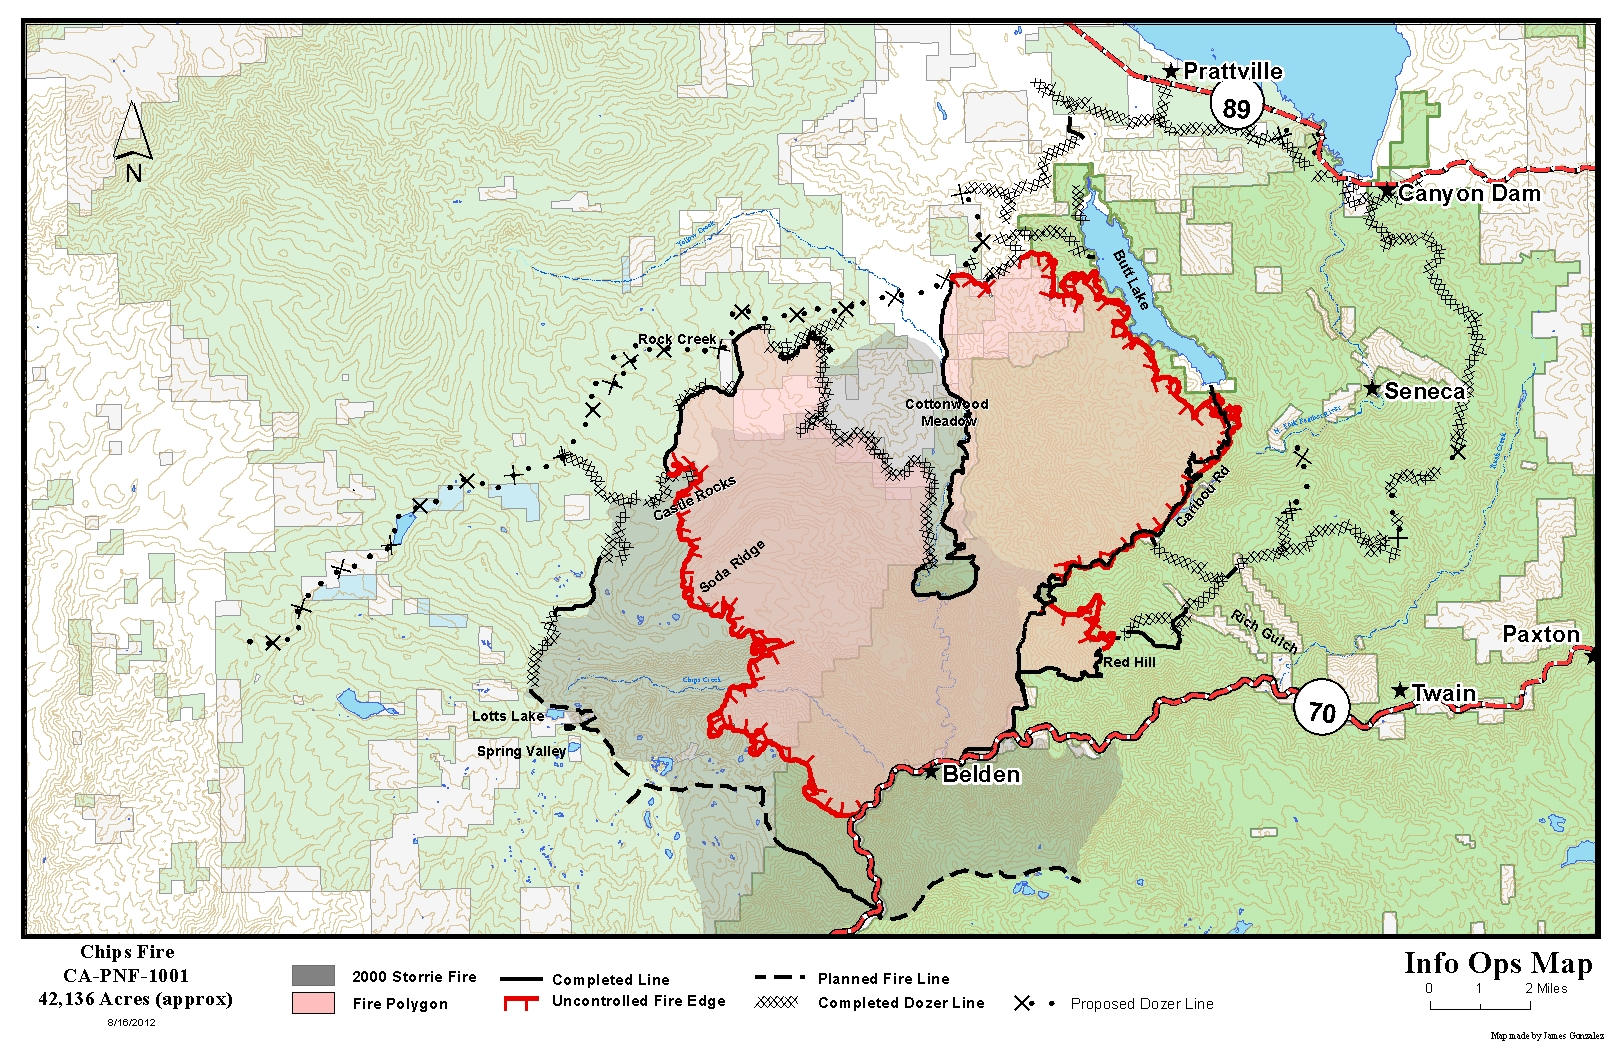 Chips Fire: Early Friday Update on Conditions with new Fire Map